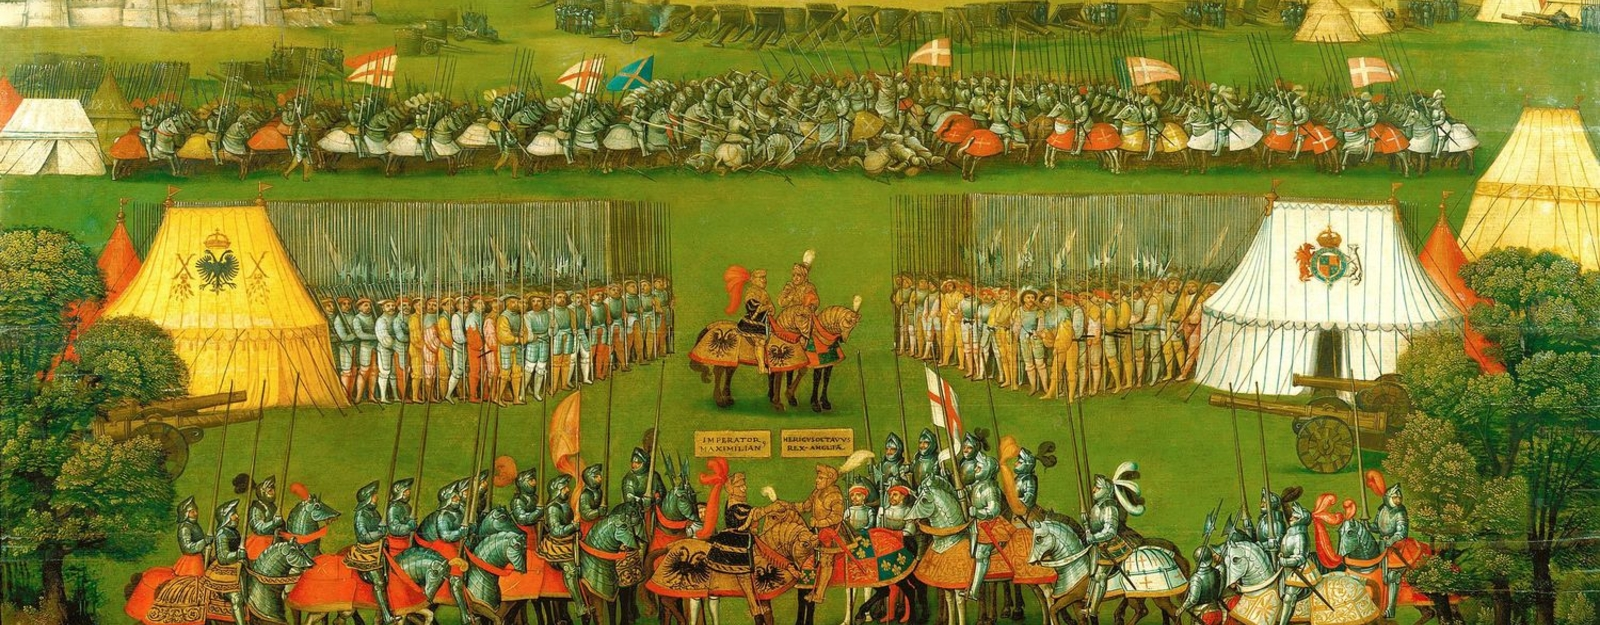 In order to pursue his ambitions in France, Henry VIII formed an alliance with the Holy Roman Emperor, Maximilian I. This painting records their meeting and the main events pertaining to Henry's first campaign against the French in 1513.  The composit